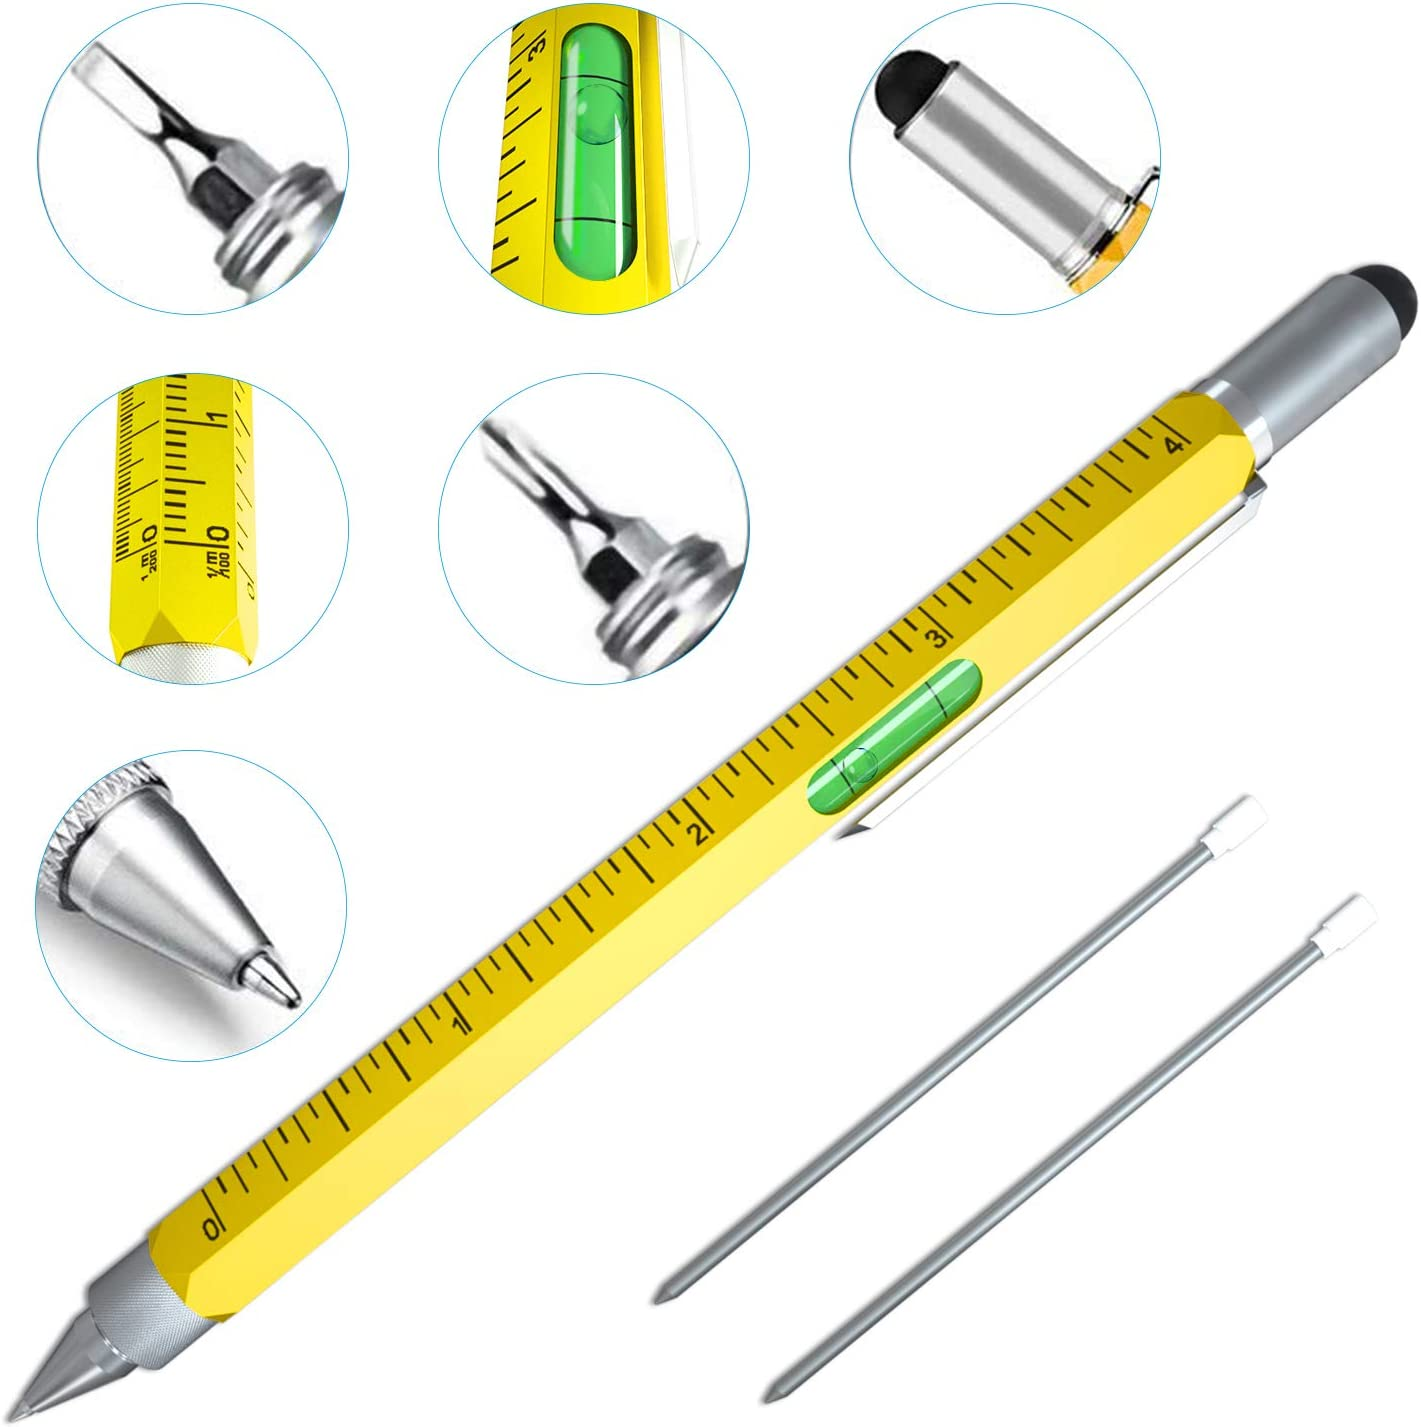 Cool Pen Gifts for Men, Cutier 6-in-1 Multi Tool Tech Pen Gadgets Tools for Men, Personalized Gifts for Dad or Him, Funny Gift for Christmas, Father's Day Valentines or Birthdays Gifts (Yellow)